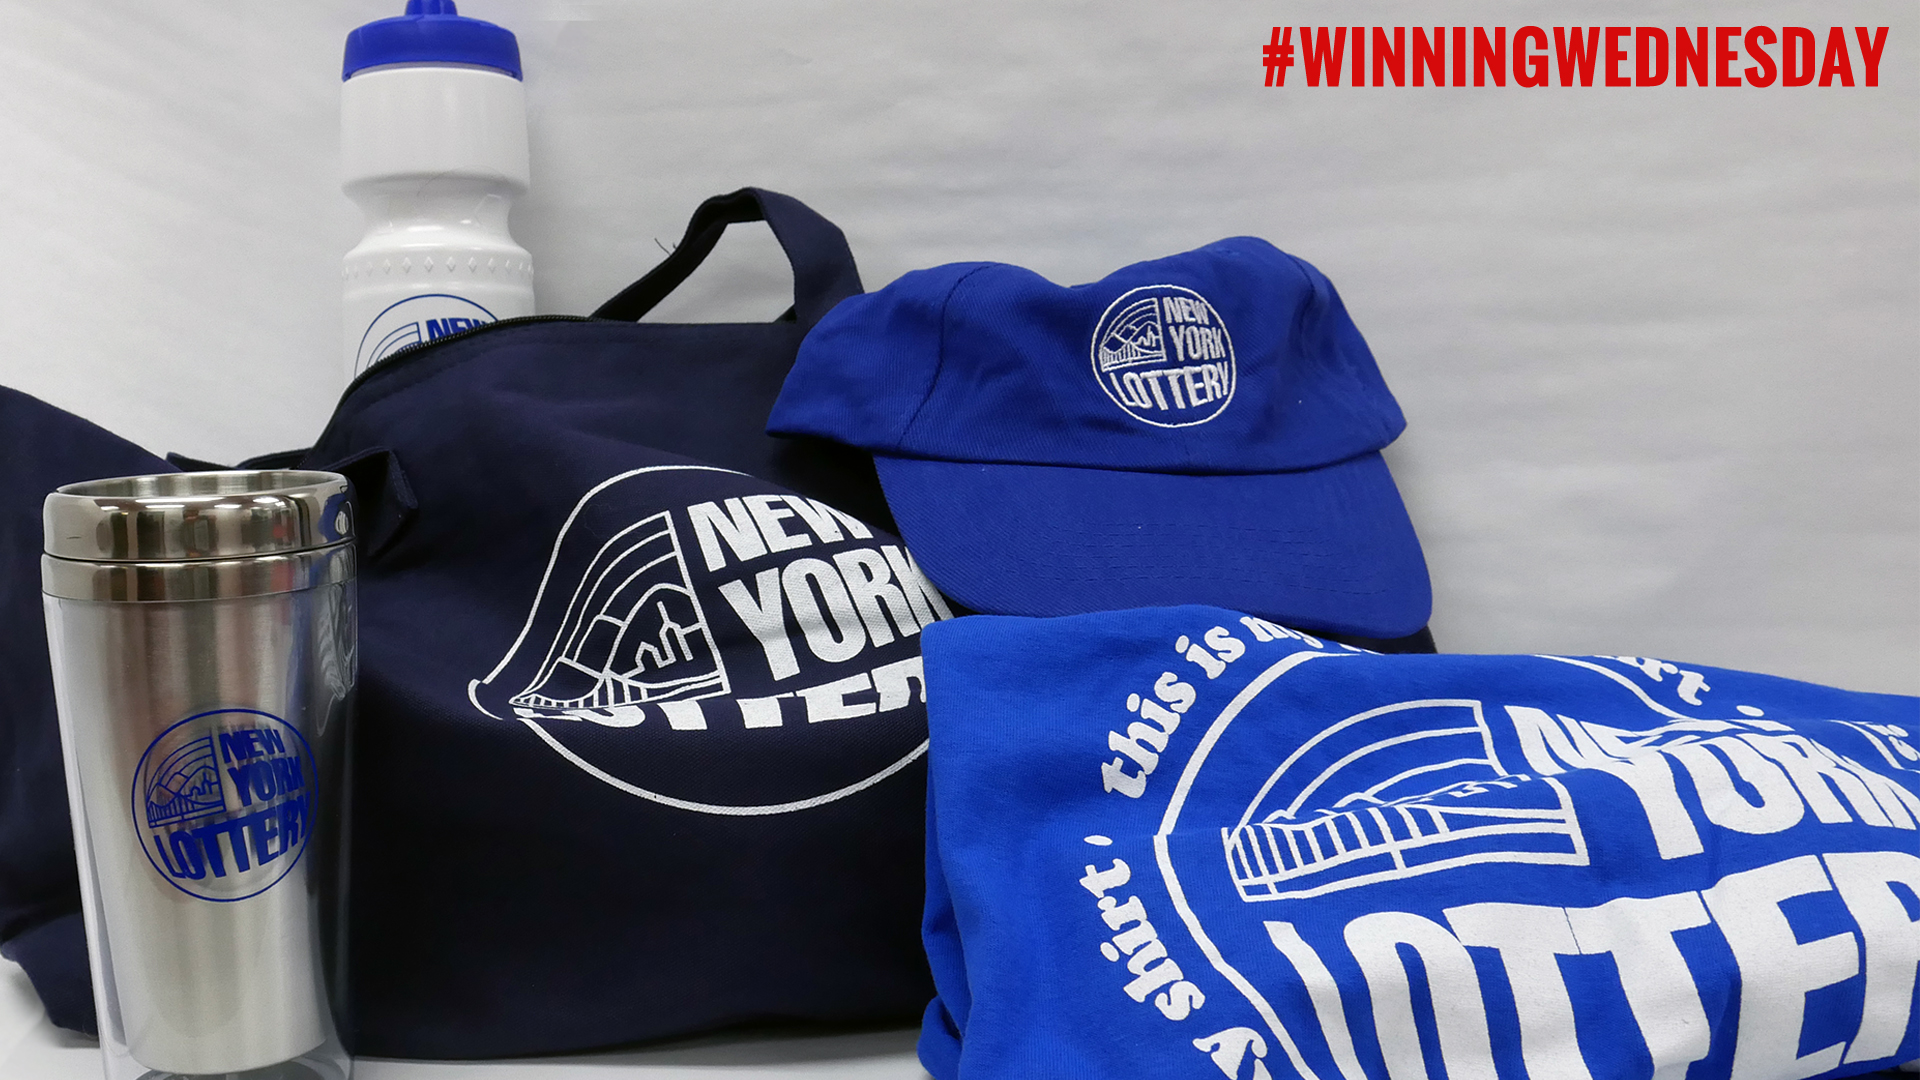 Winningwednesday ny lottery prize pack albany devils for Northeast ski and craft beer showcase